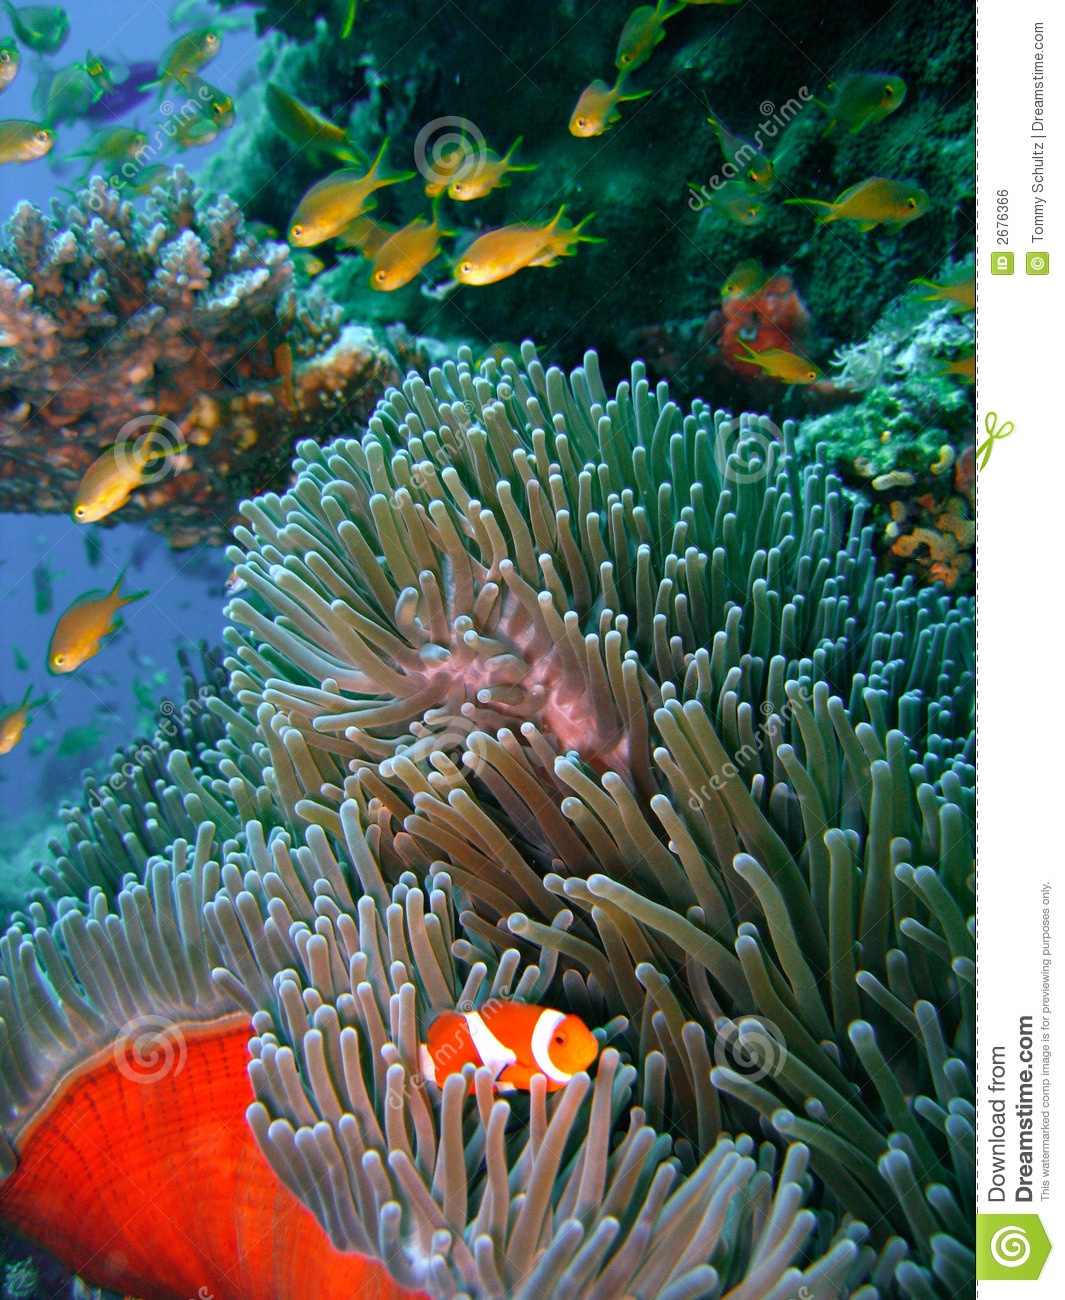 Colorful coral reef fish stock photo. Image of psychedelic ...